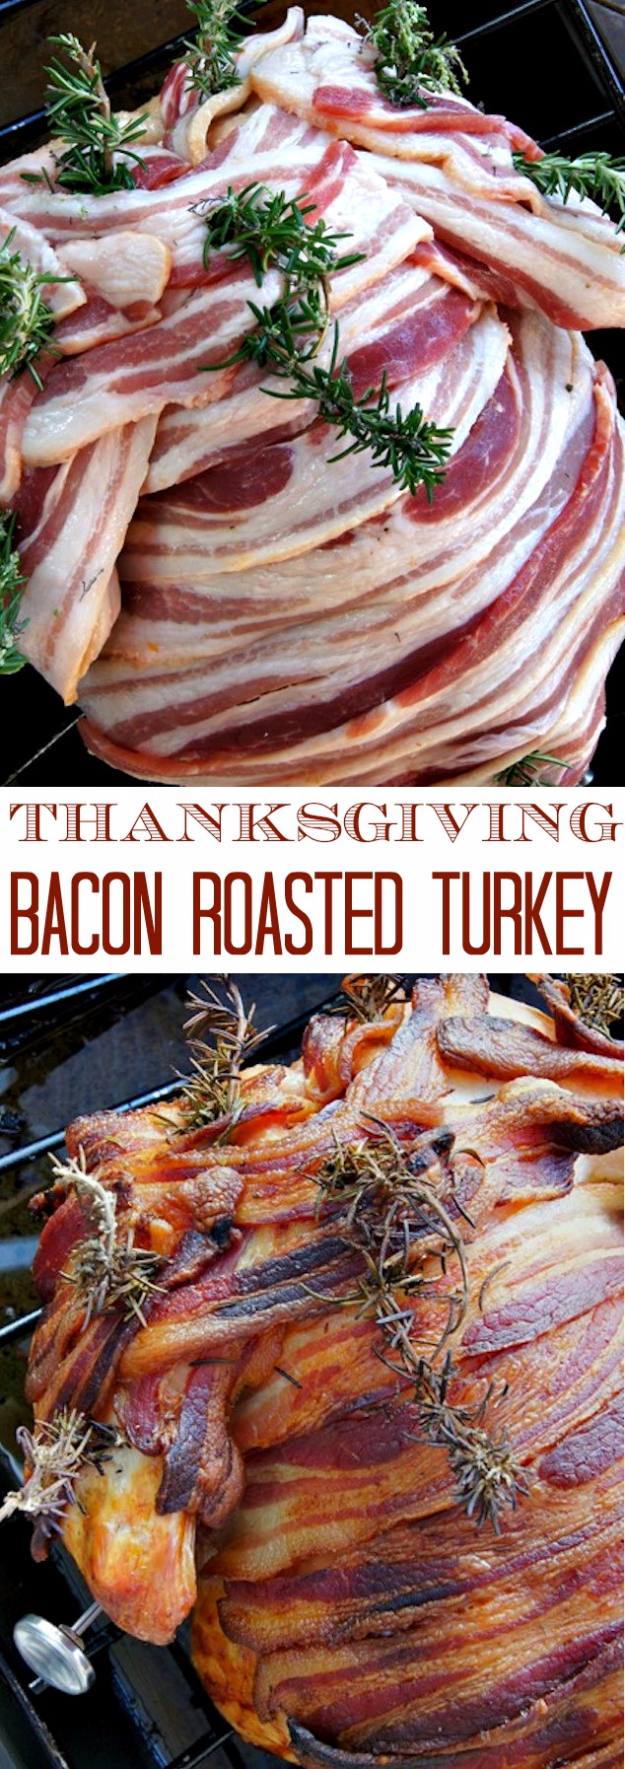 Best Thanksgiving Dinner Recipes - Thanksgiving Bacon Roasted Turkey - Easy DIY Desserts, Sides, Sauces, Main Courses, Vegetables, Pie and Side Dishes. Simple Gravy, Cranberries, Turkey and Pies With Step by Step Tutorials